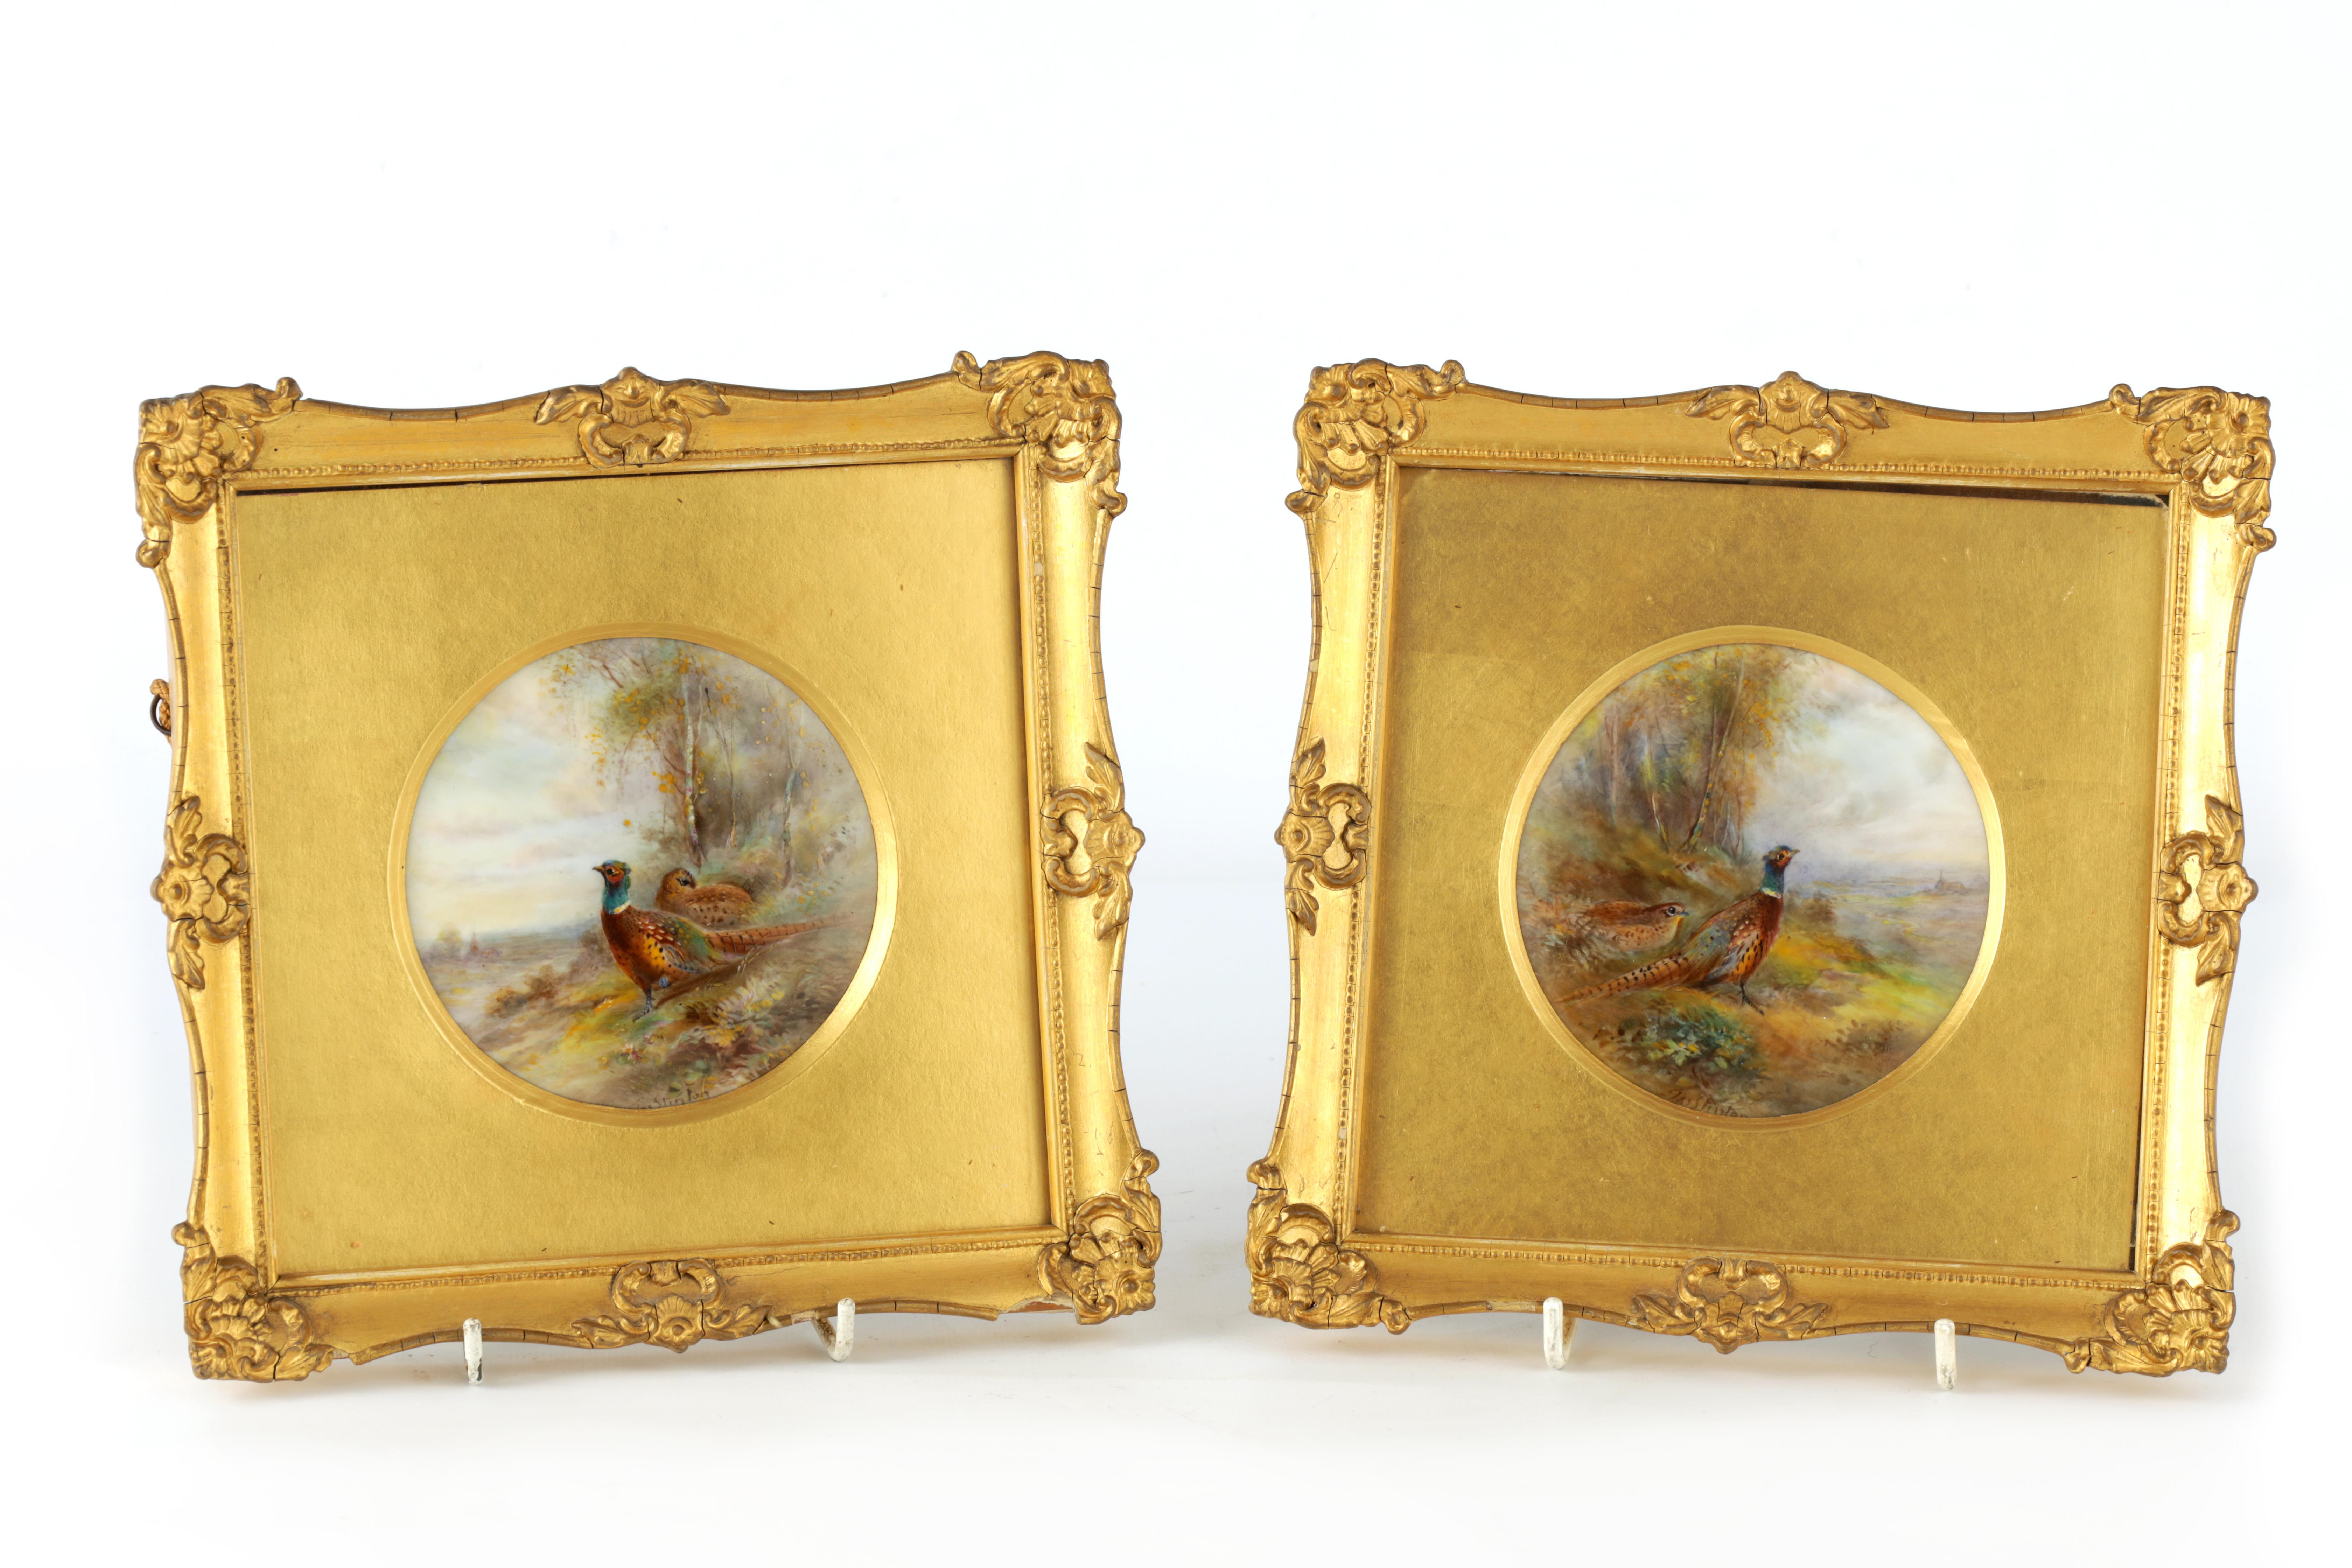 JAMES STINTON 1870-1961. A SIGNED PAIR OF ROYAL WORCESTER CIRCULAR PORCELAIN PLAQUES painted with